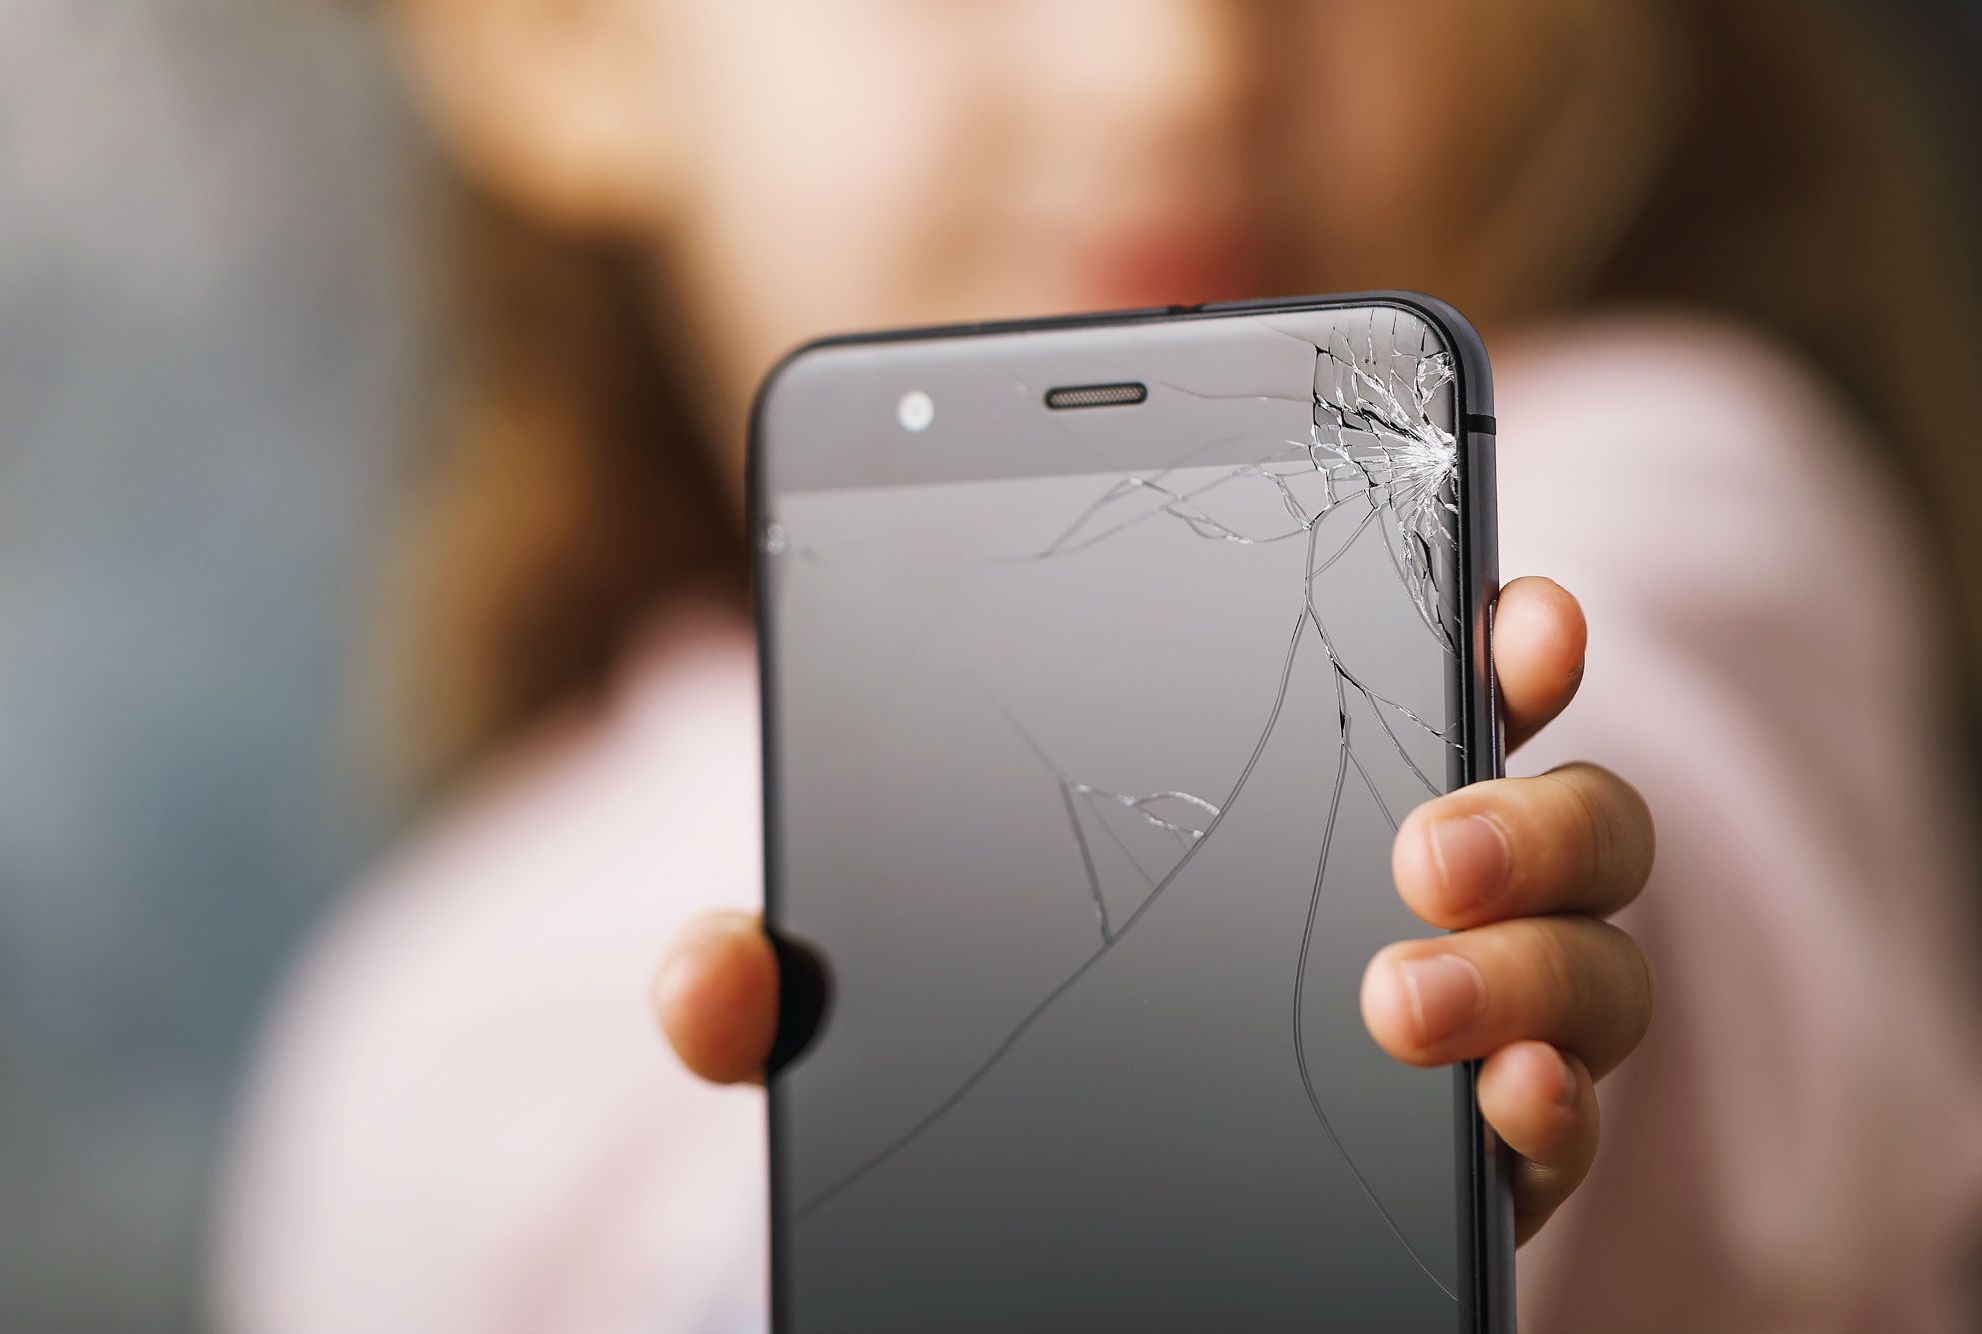 Sprint Will Fix The Cracked Screen On Your Samsung Galaxy For 49 Even If They Re Not Your Carrier Mental Floss